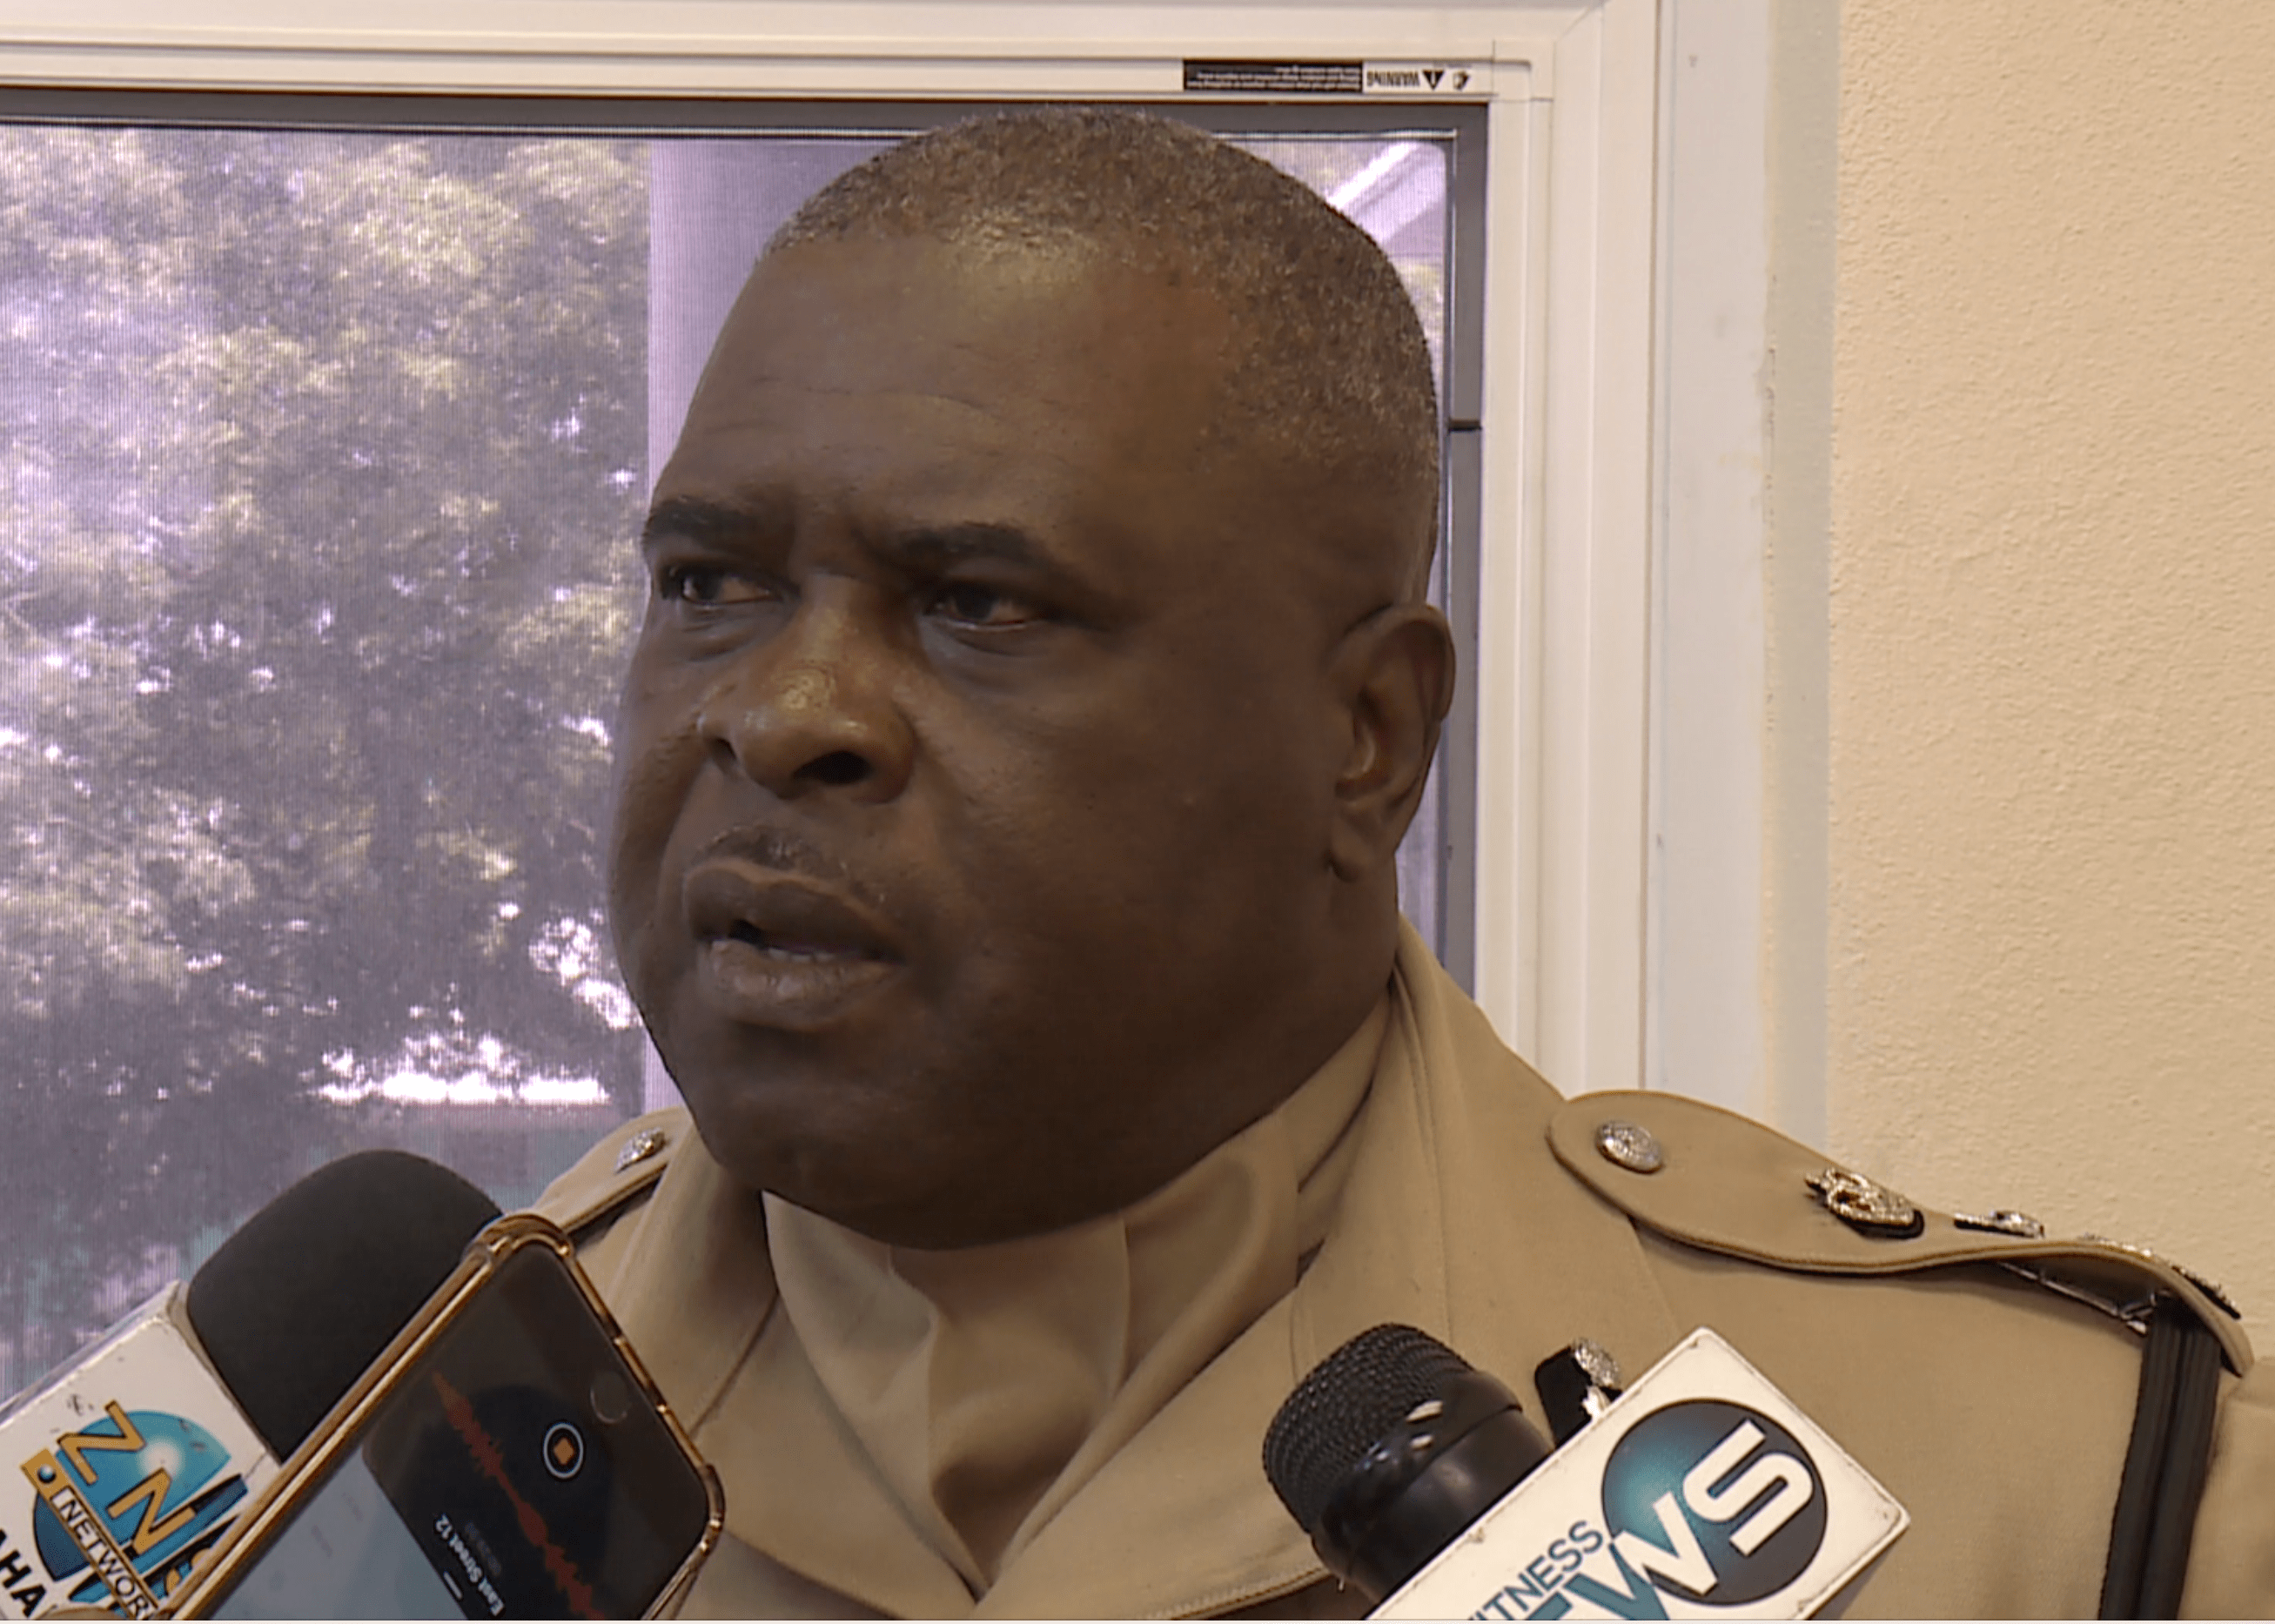 COP: No crime uptick during power outages